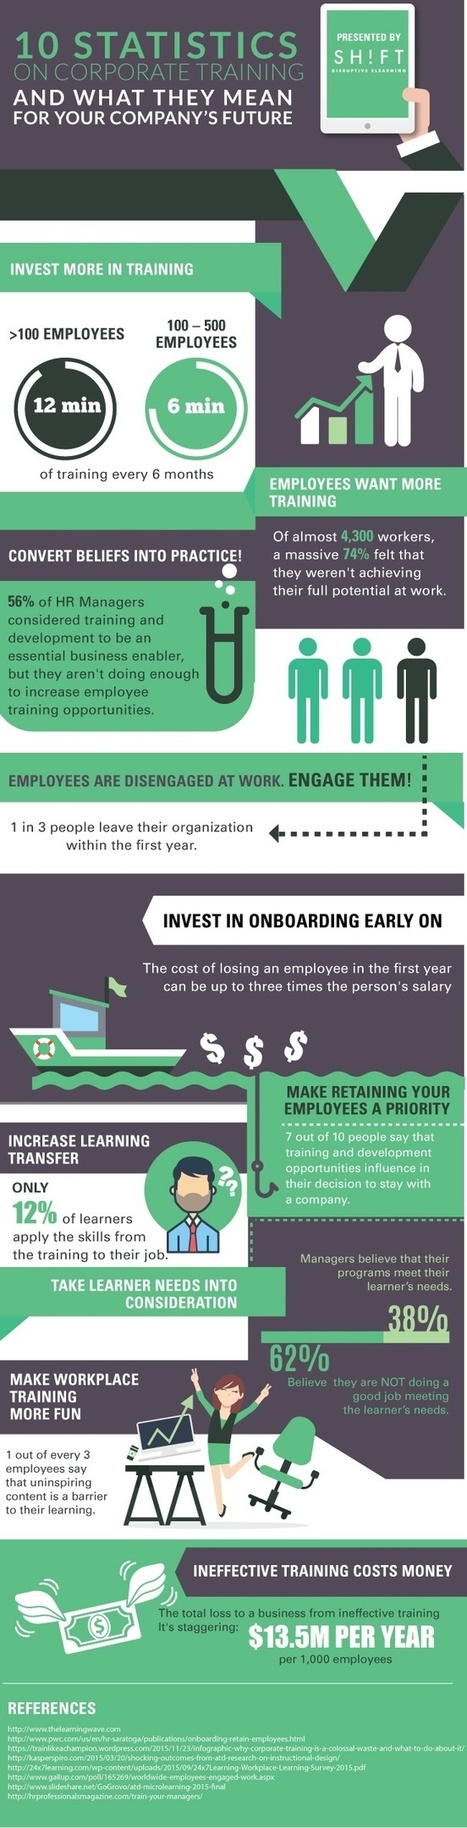 "Infographie : ""10 Statistics on Corporate Training and What They Mean for Your Company's Future"" 